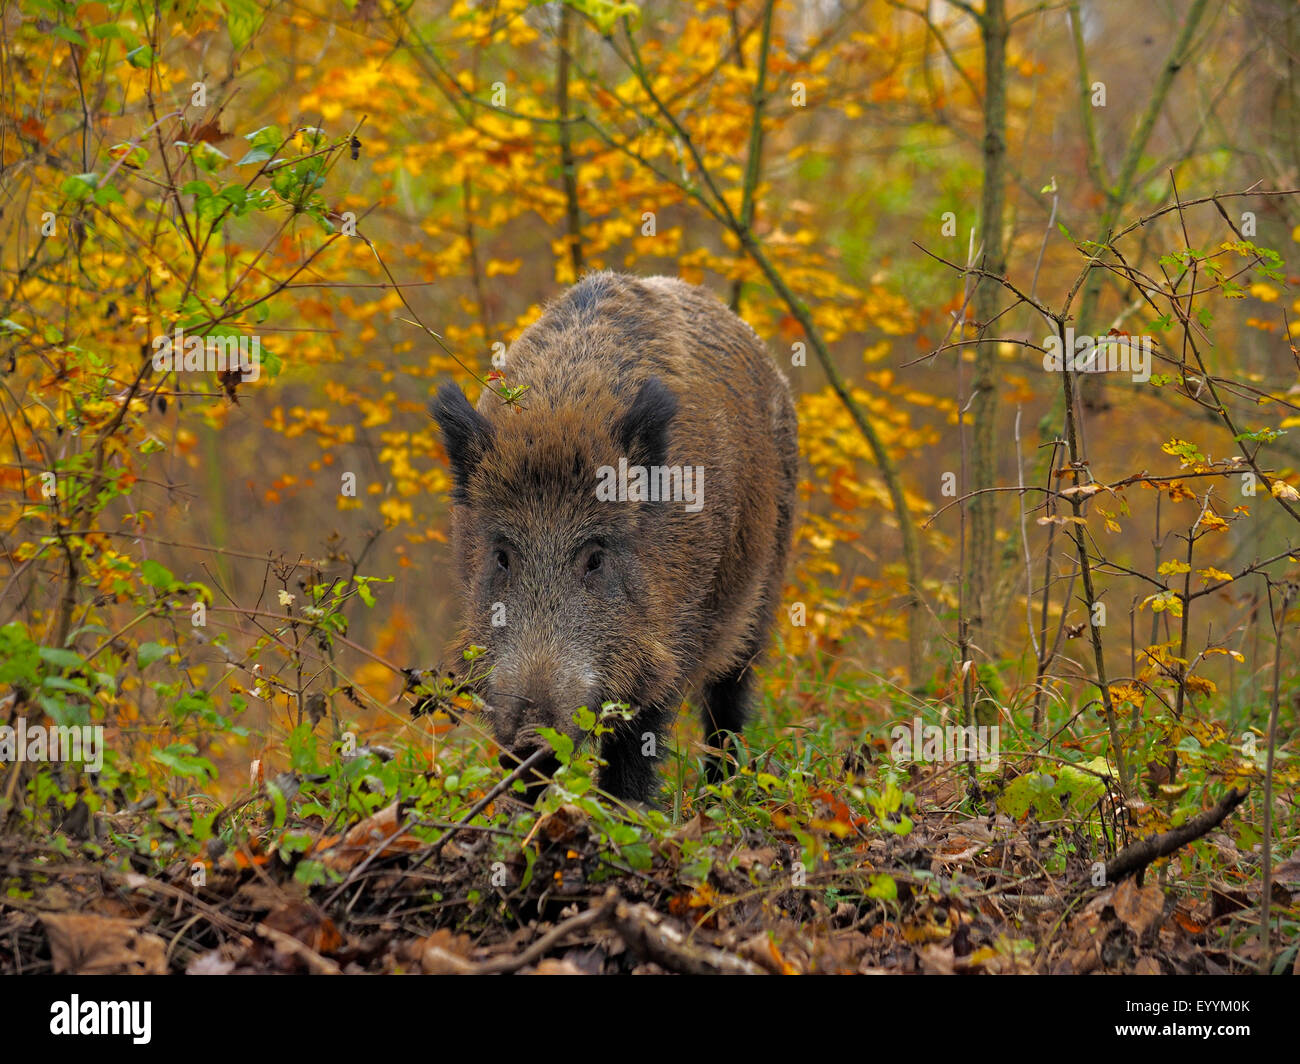 wild boar, pig, wild boar (Sus scrofa), wild sow standing in a shrubbery in autumn, Germany, Baden-Wuerttemberg - Stock Image